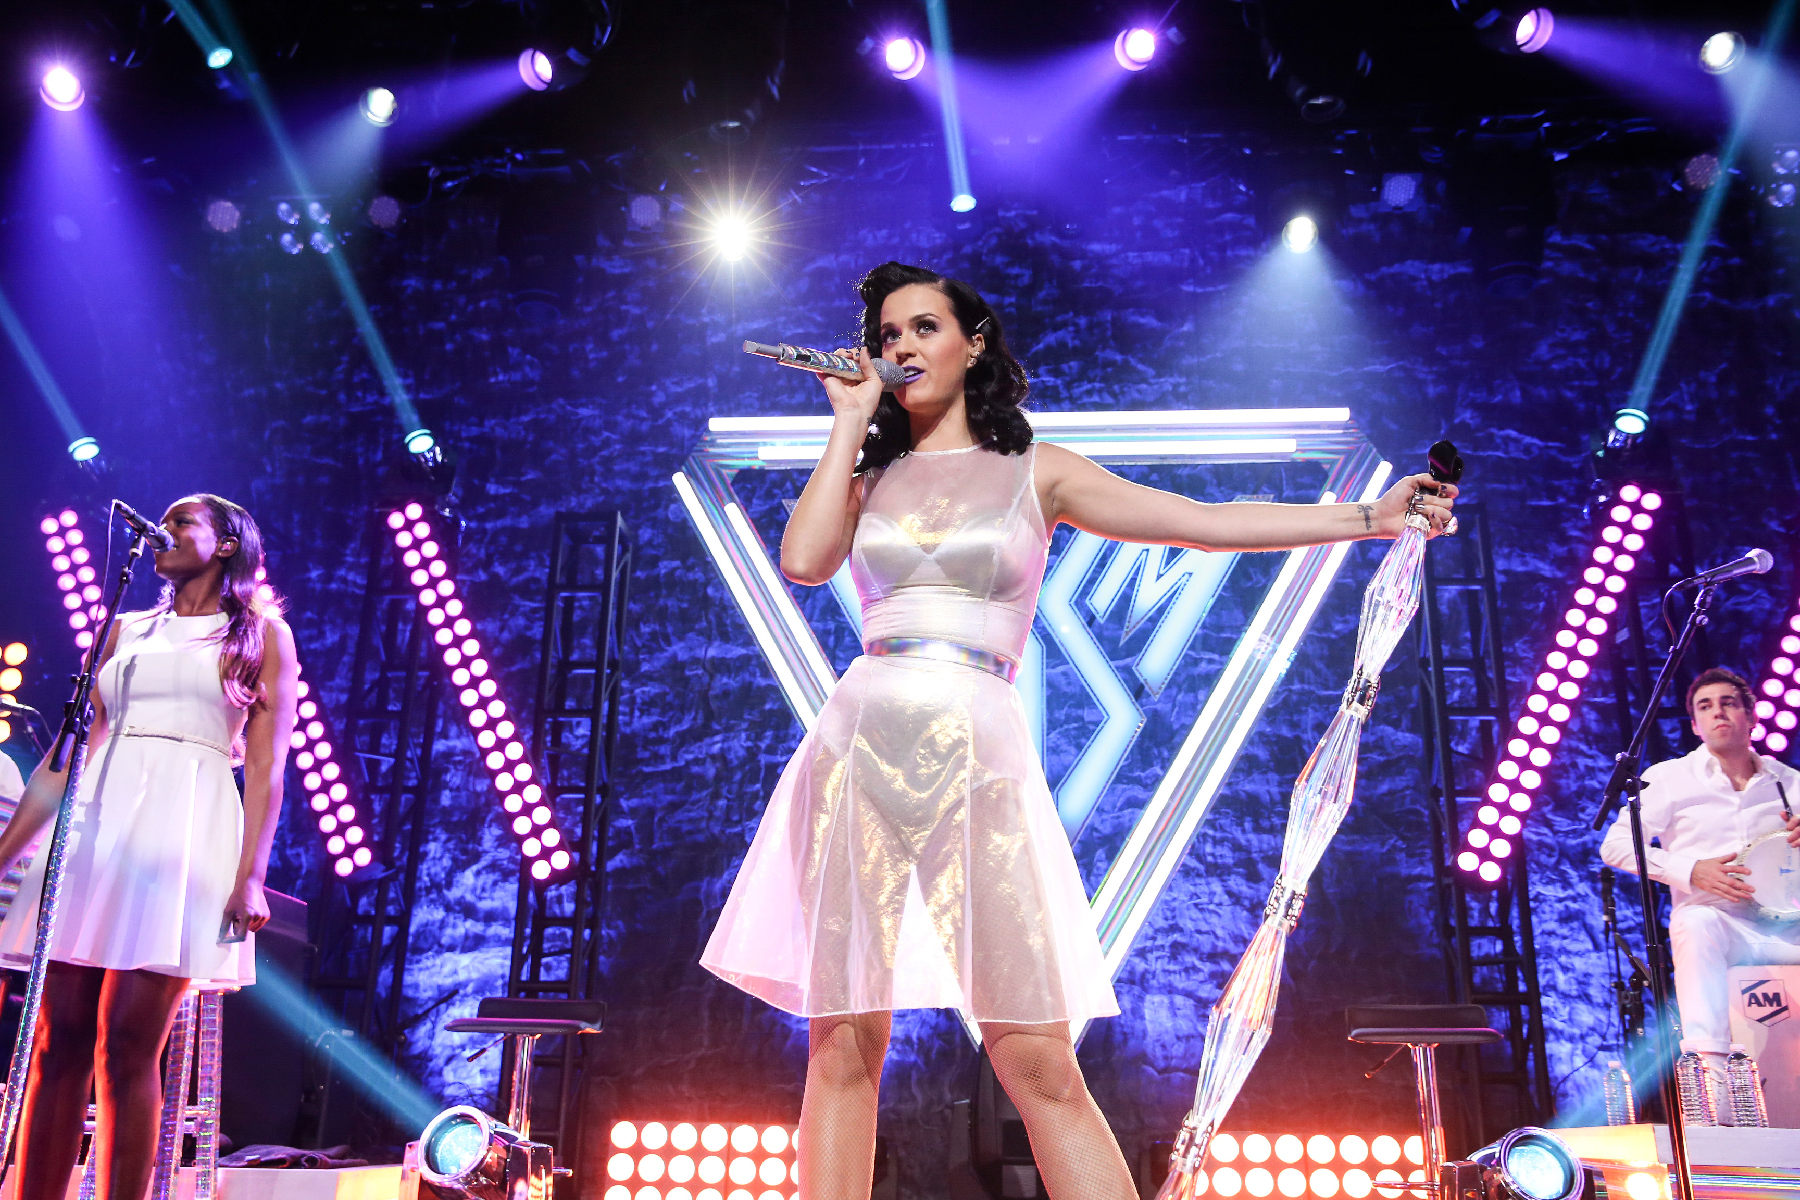 Katy Perry Cues Up 'Prismatic' World Tour - Rolling Stone